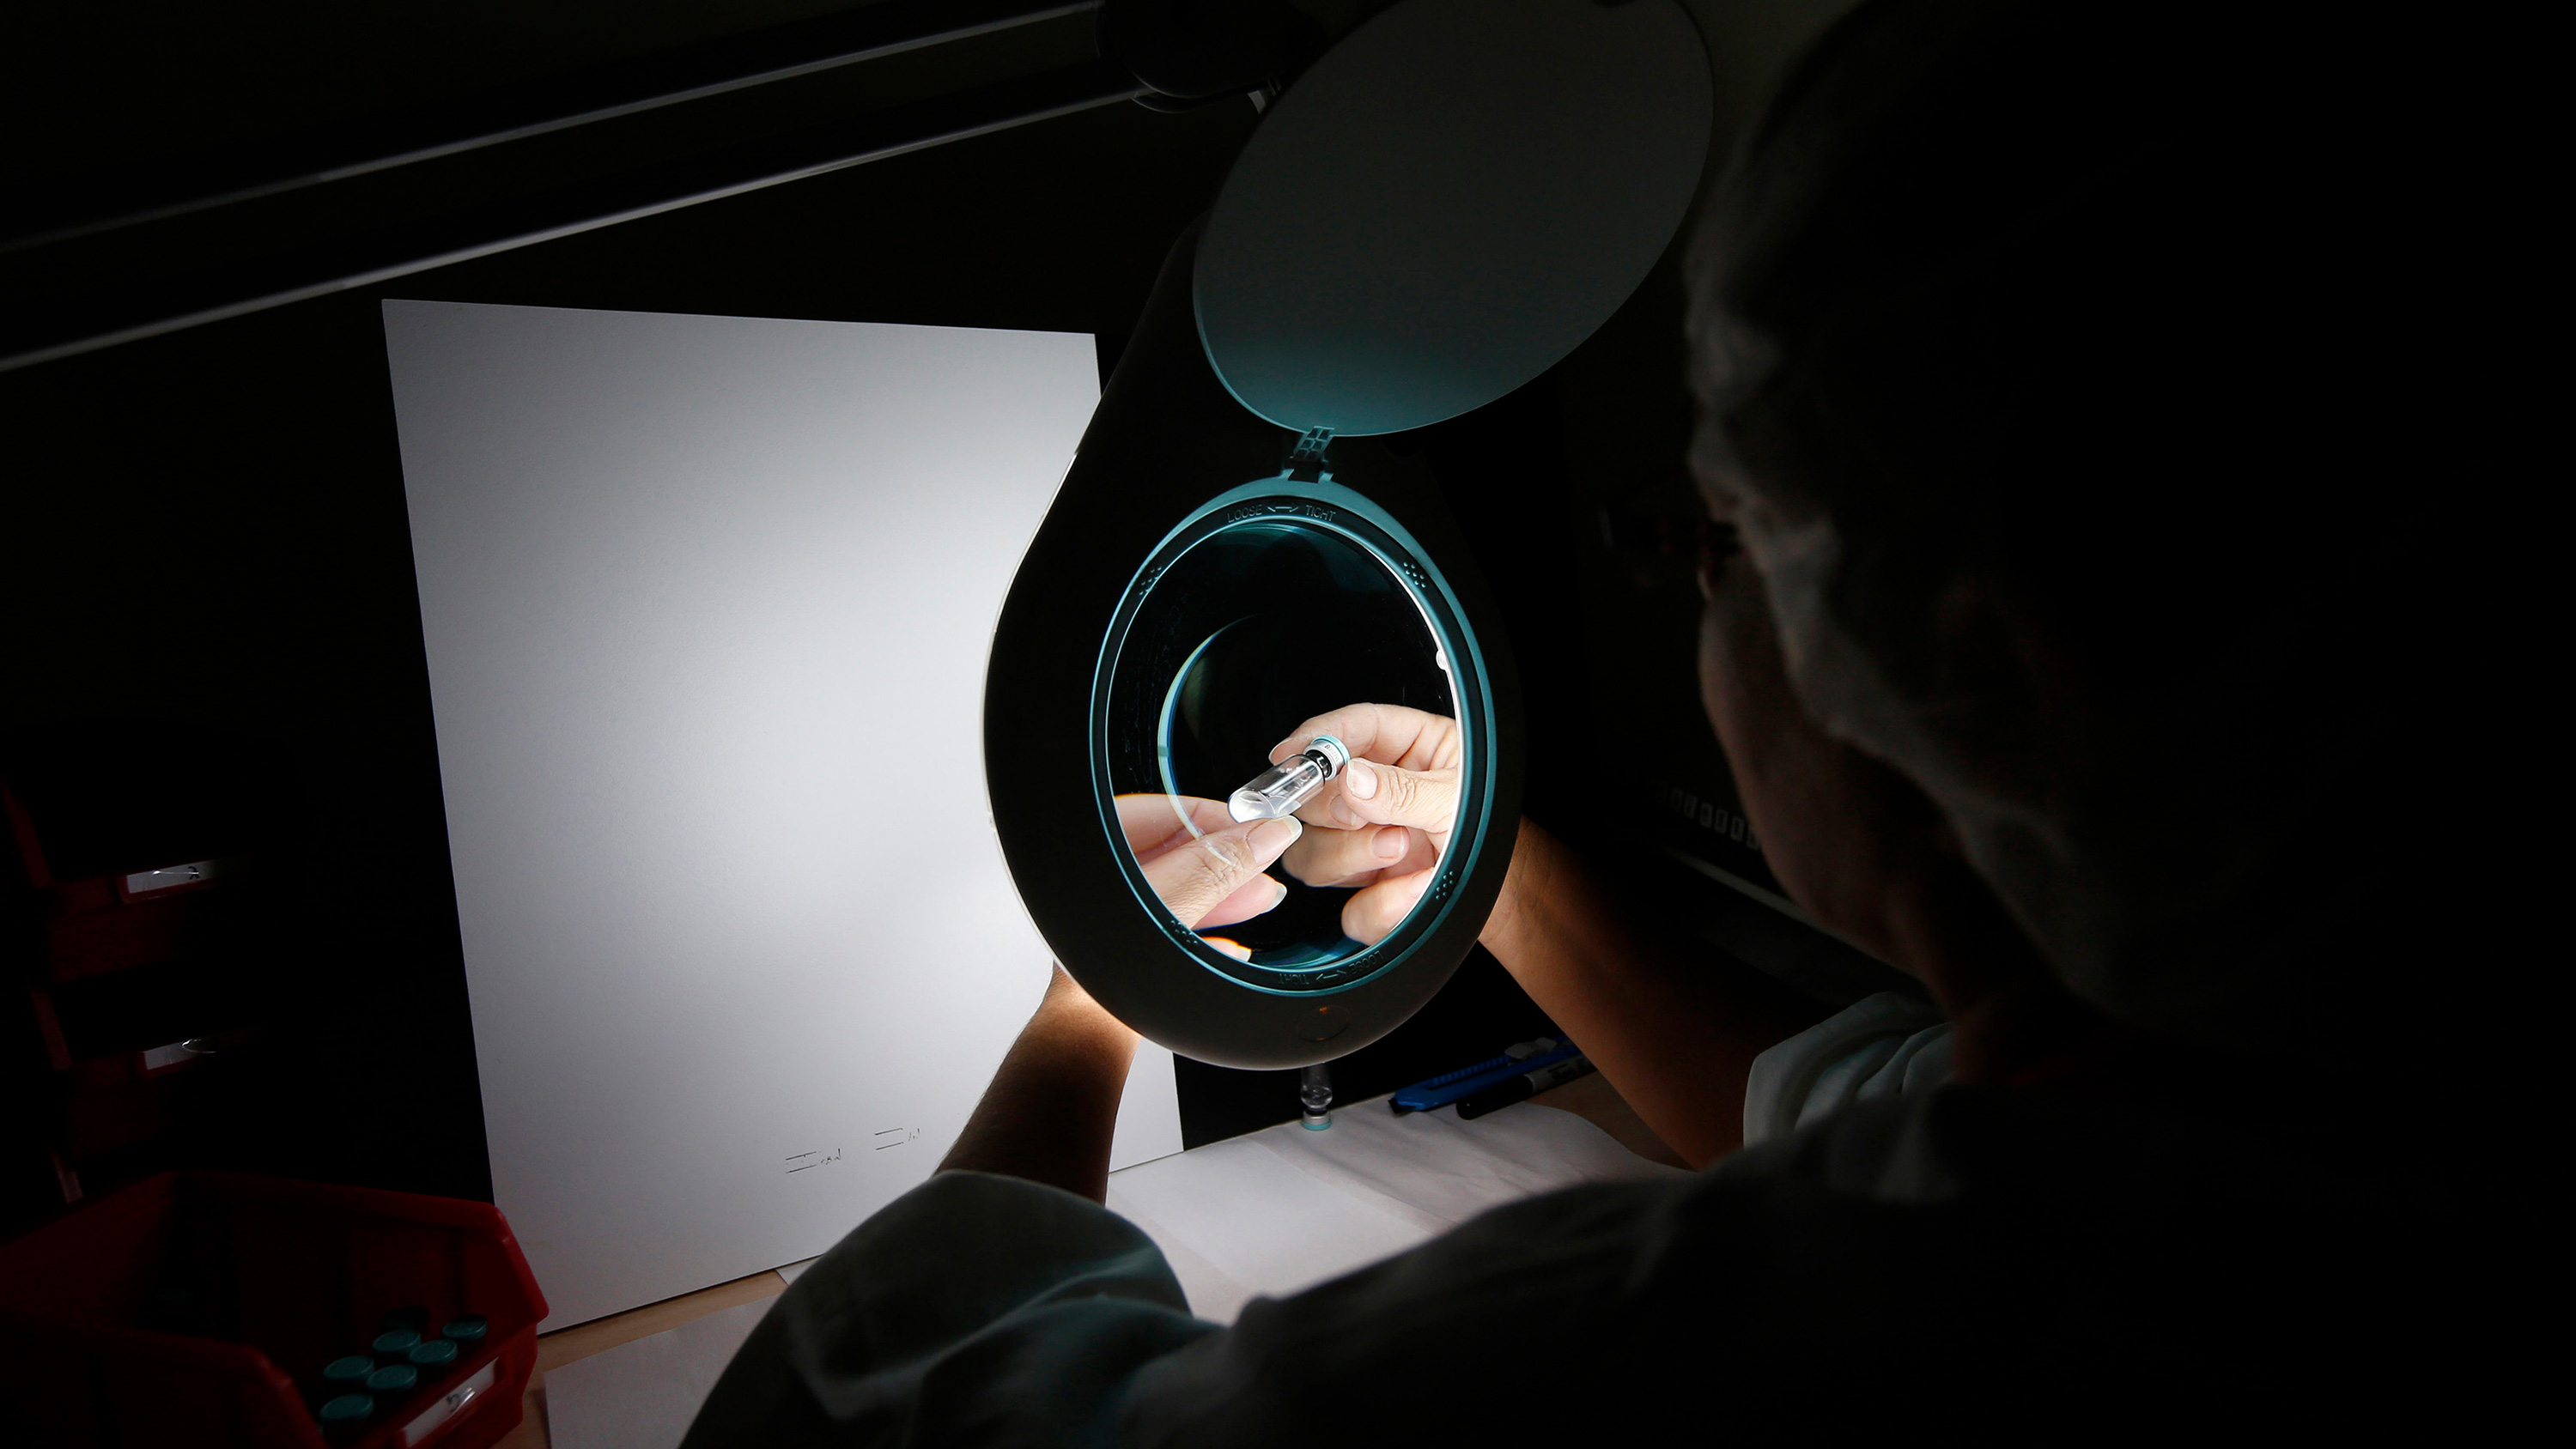 Picture taken shows a laboratory worker at a darkened bench looking at a tiny vial under a lighted magnifying lens.